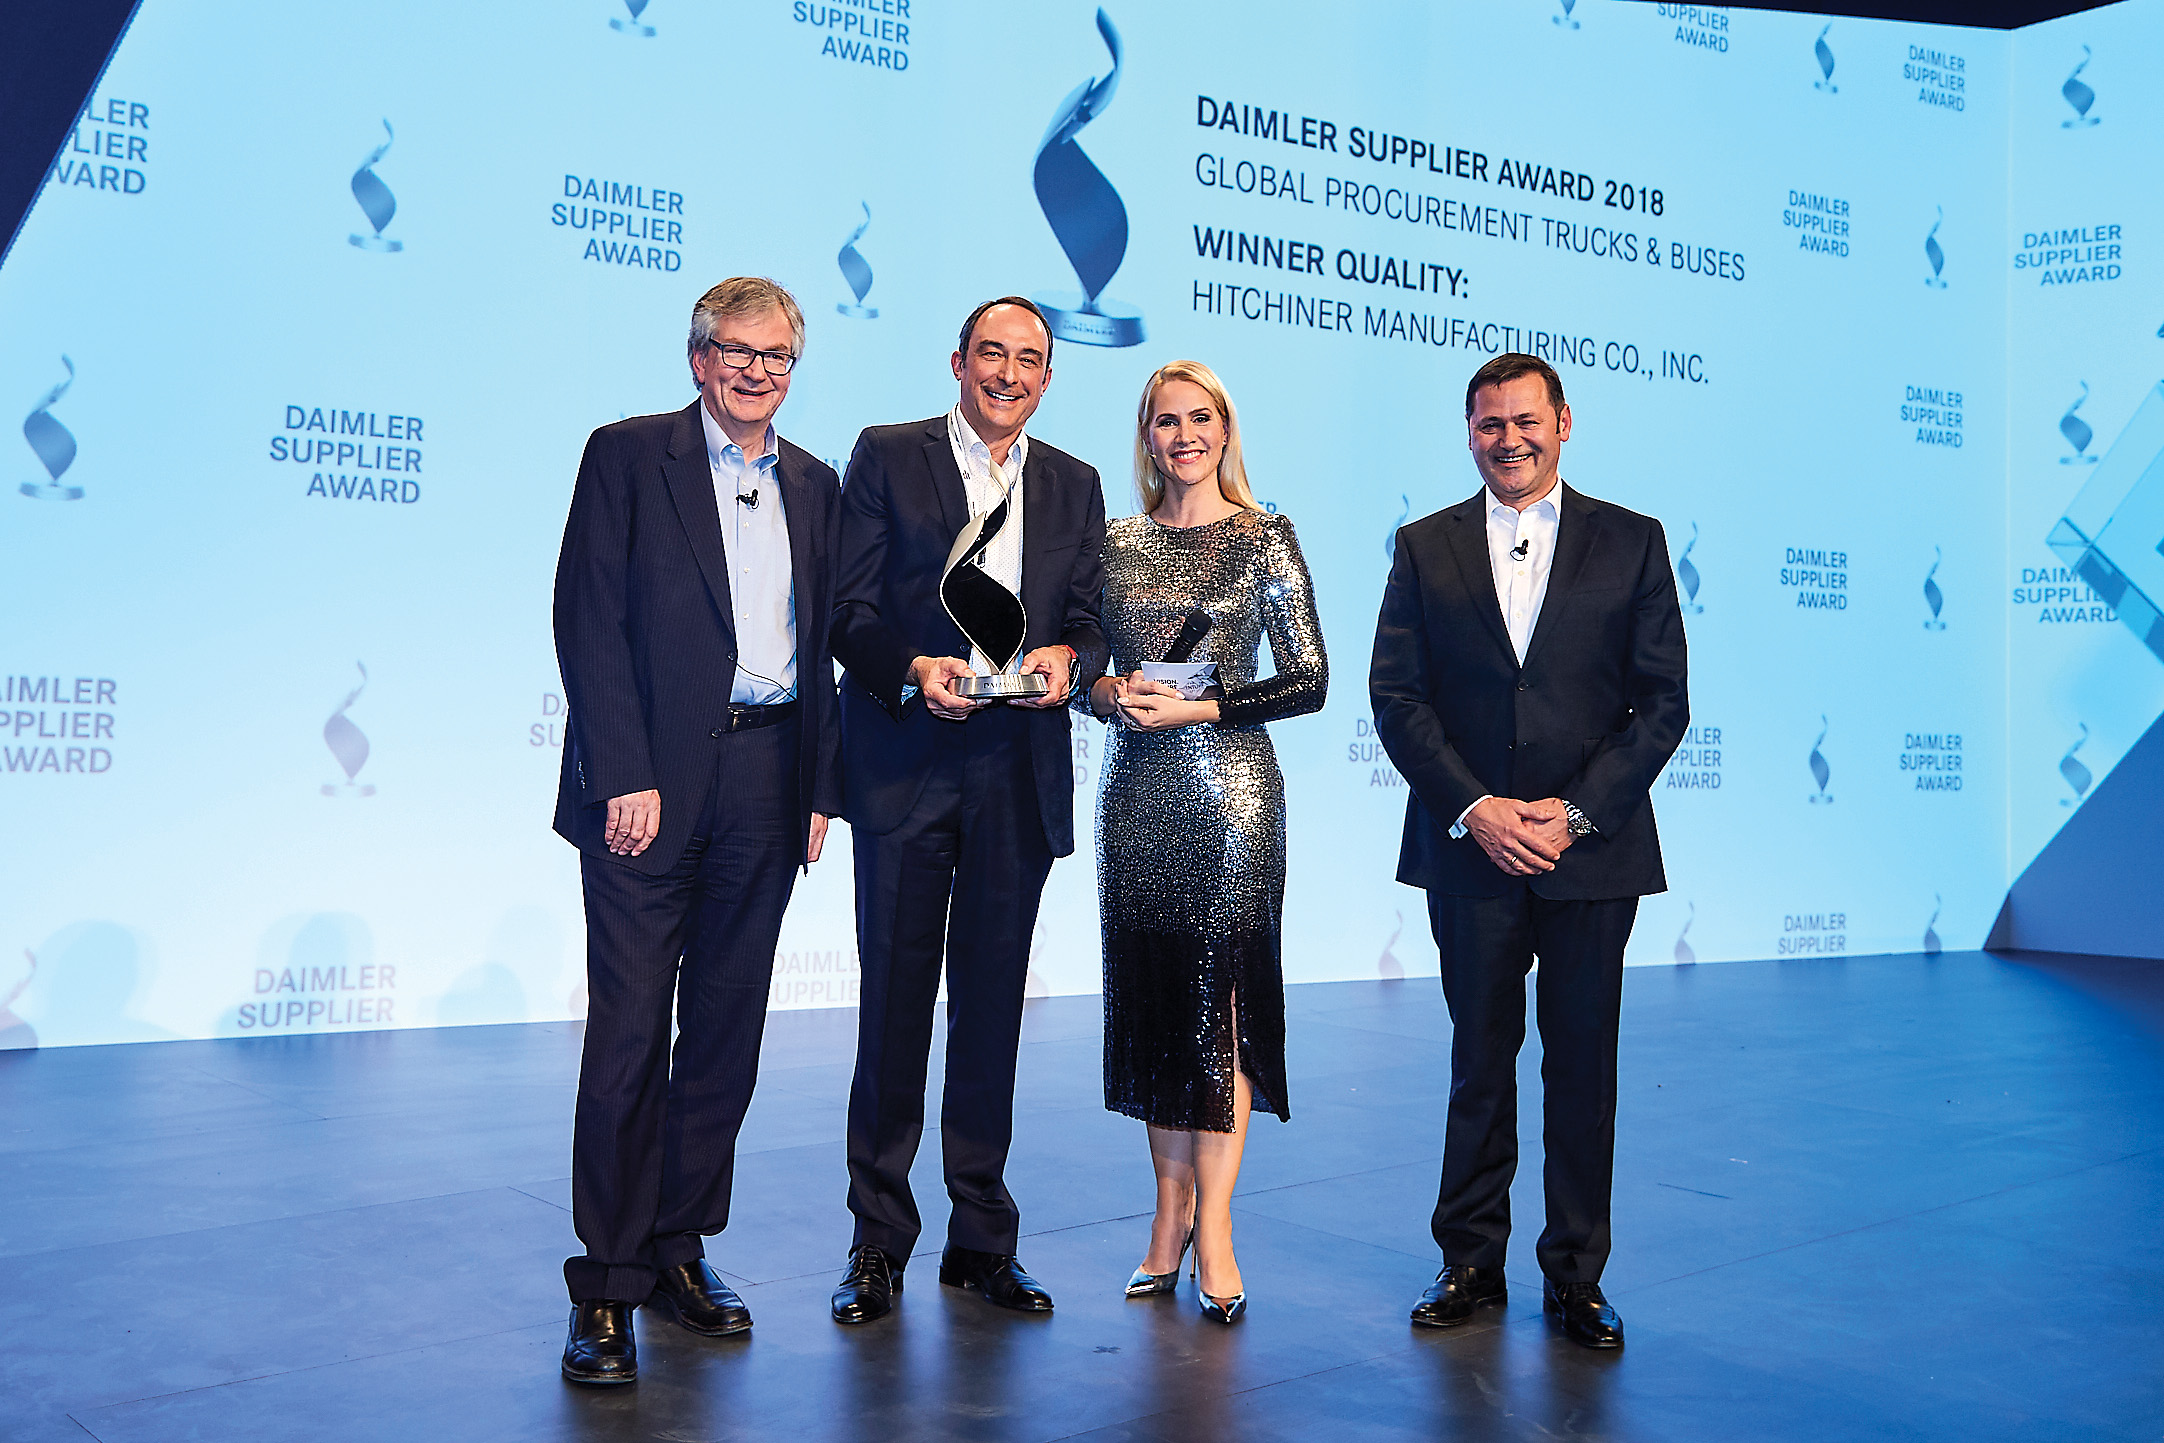 Pictured left to right: Martin Daum, Member of the Board of Management of Daimler AG Daimler Trucks & Busses; John H. Morison, III, Chairman & Chief Executive Officer, Hitchiner Manufacturing Co., Inc.; host Judith Rakers; Dr. Marcus Schoenenberg, Vice President Global Procurement Daimler Trucks & Busses